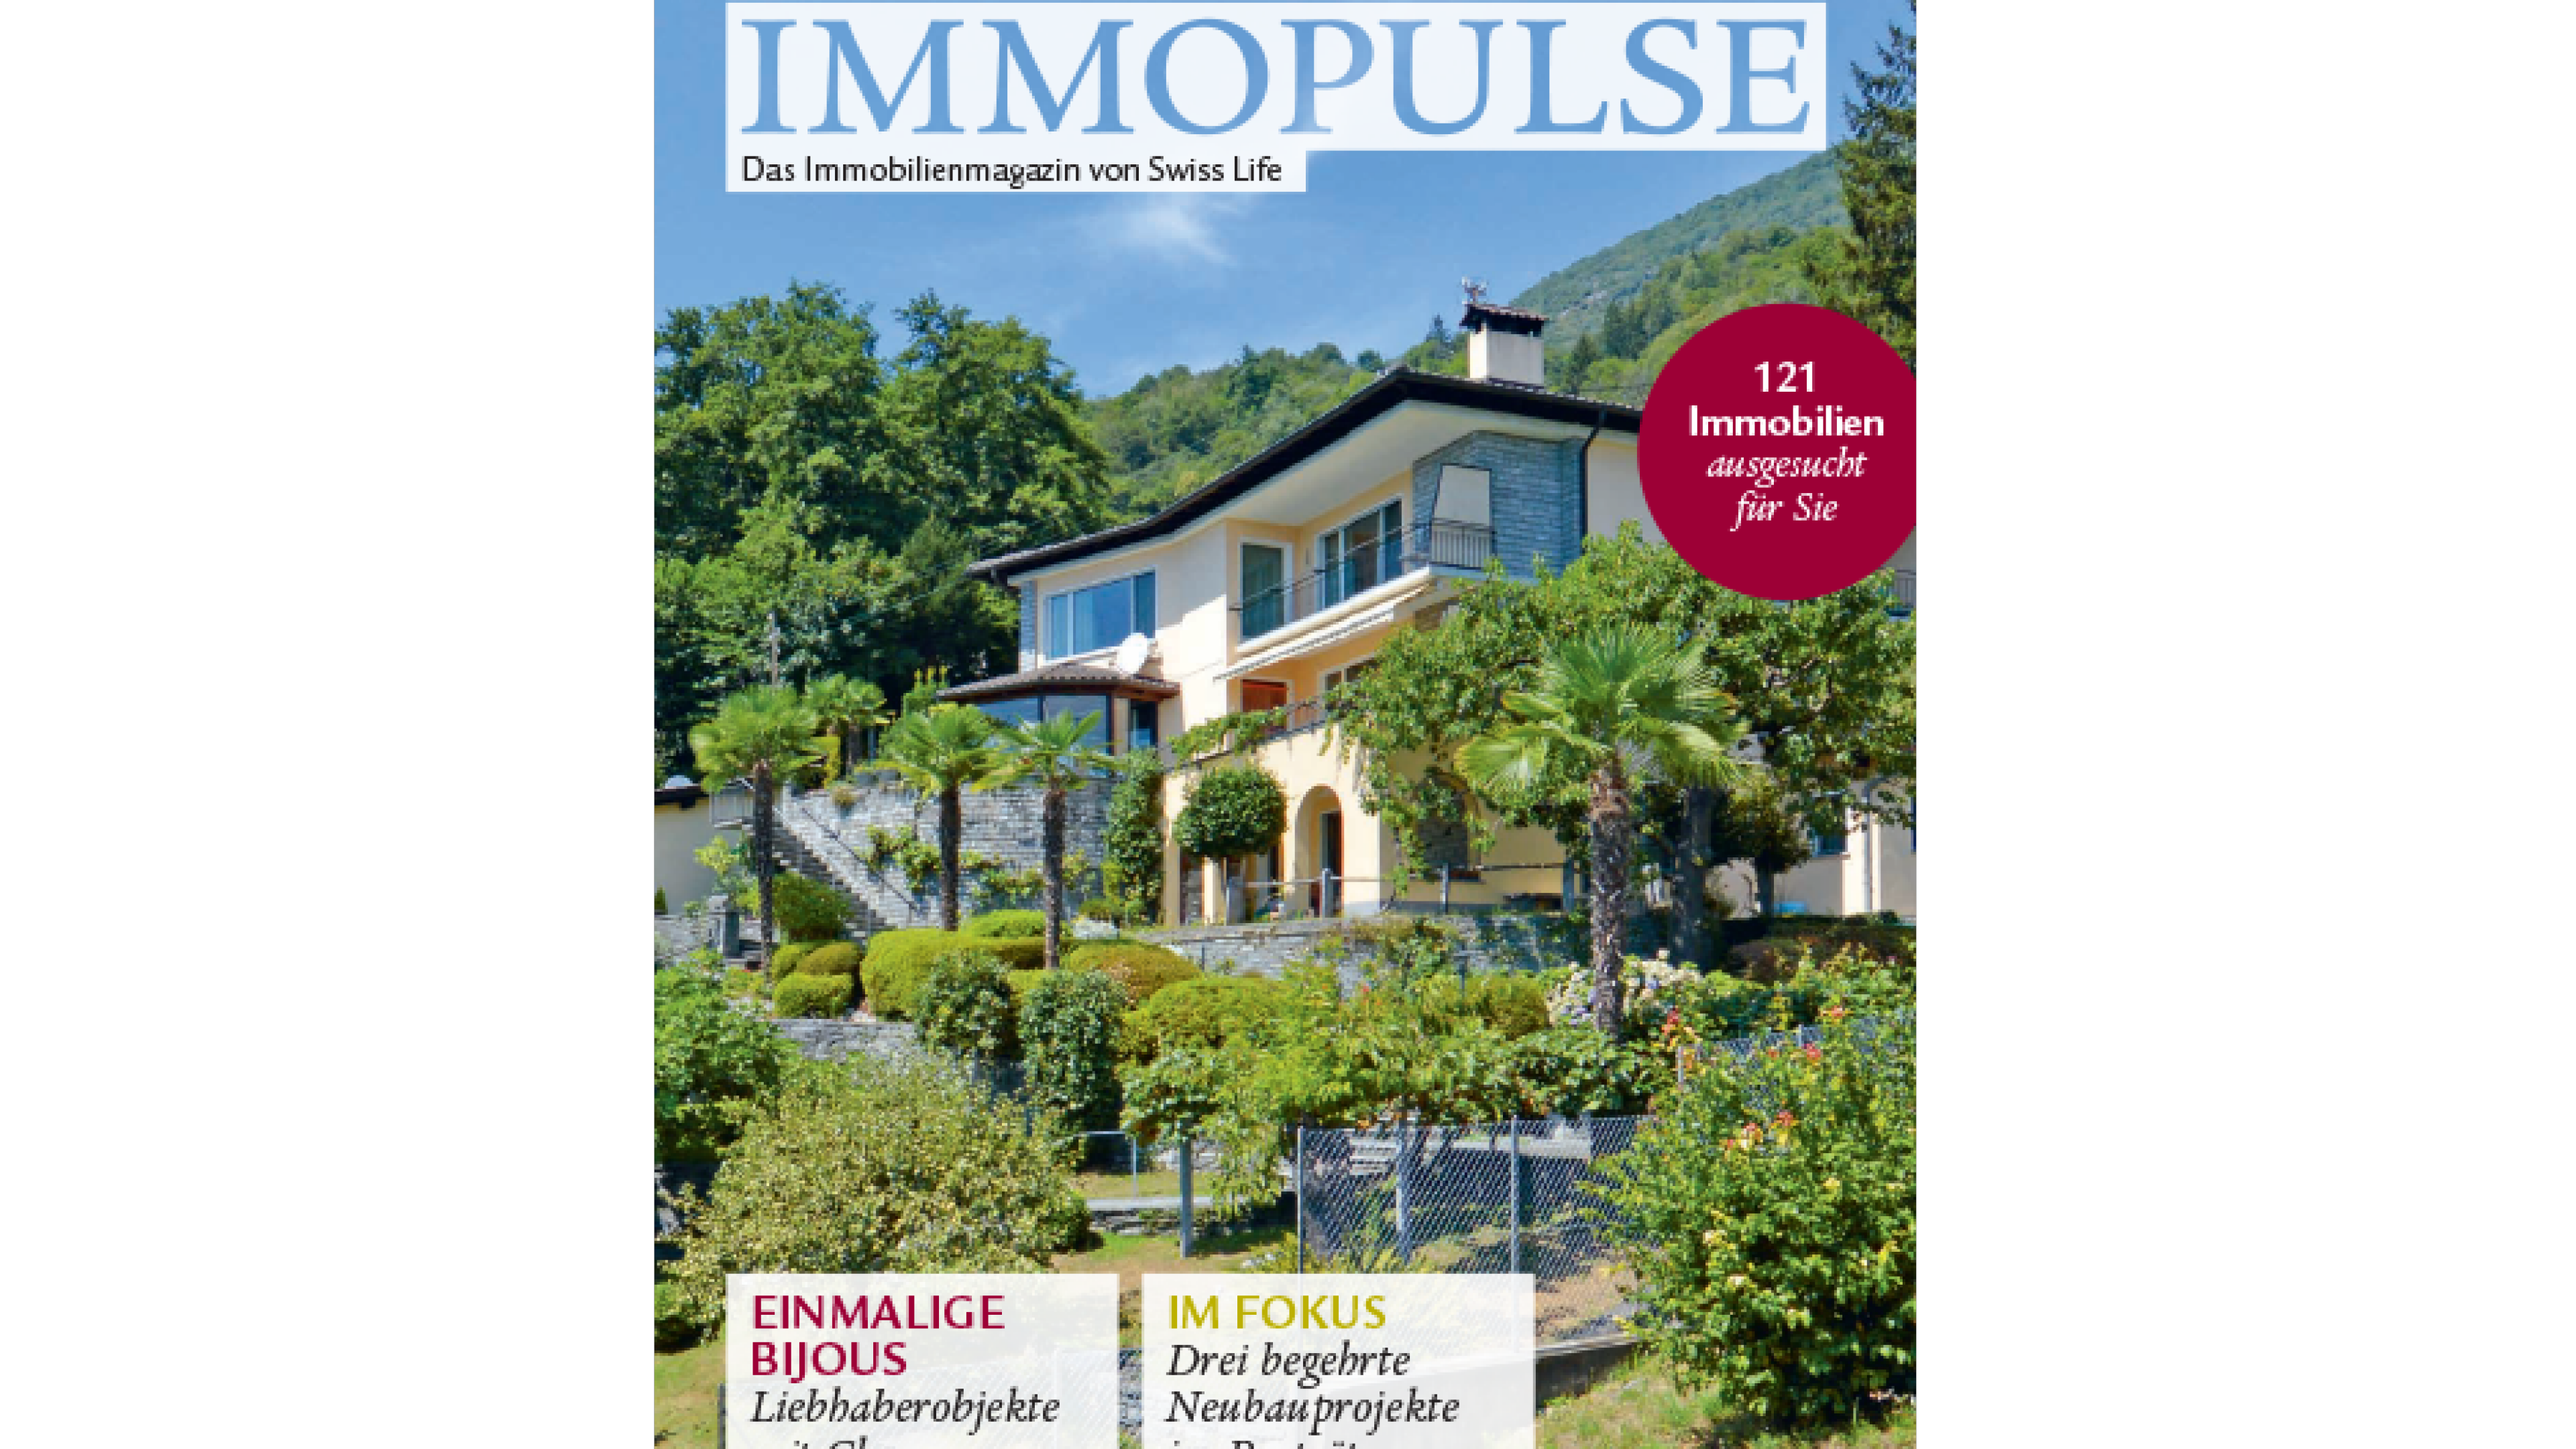 Immopulse-magazin_2020-02_DE